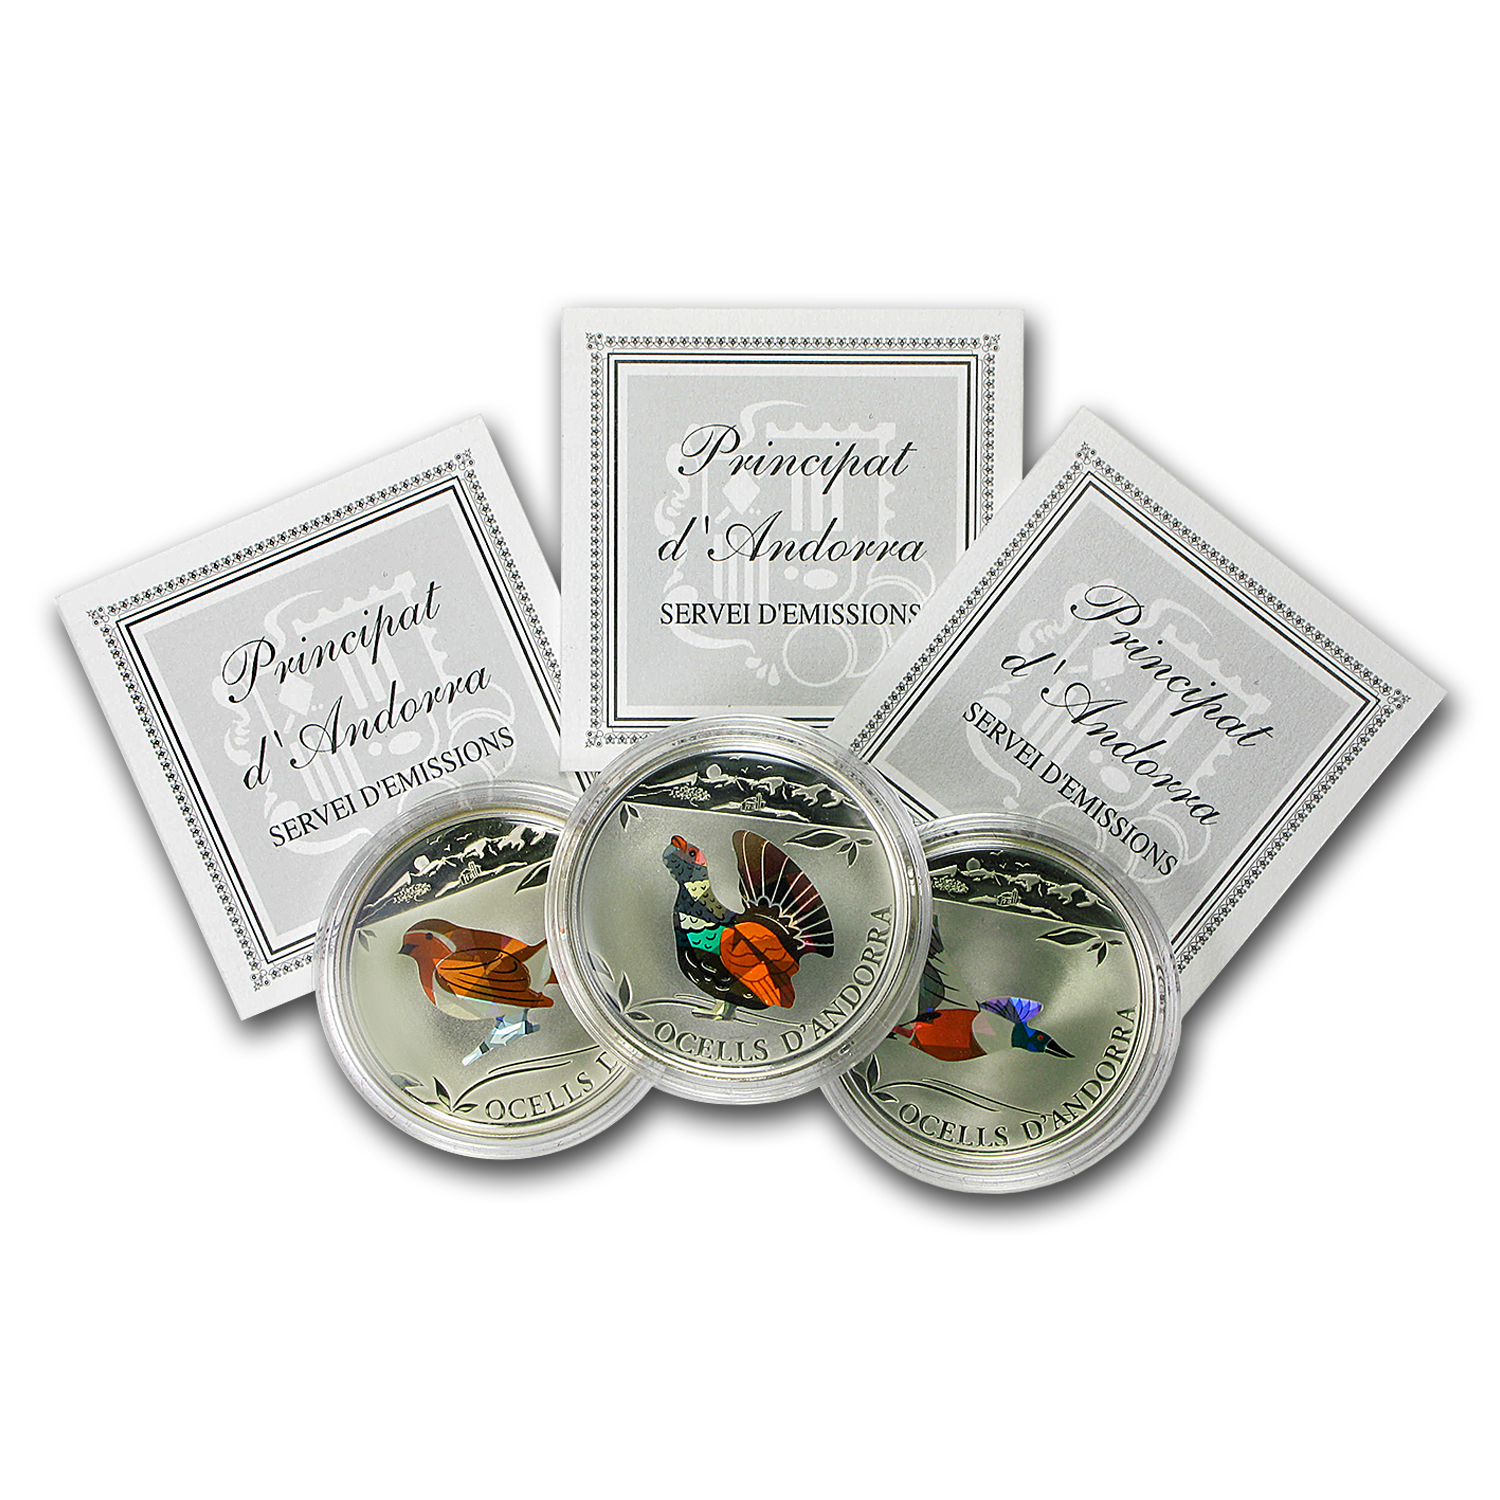 2012 Andorra 3-Coin Silver 5 Diners Prism Birds Proof Set